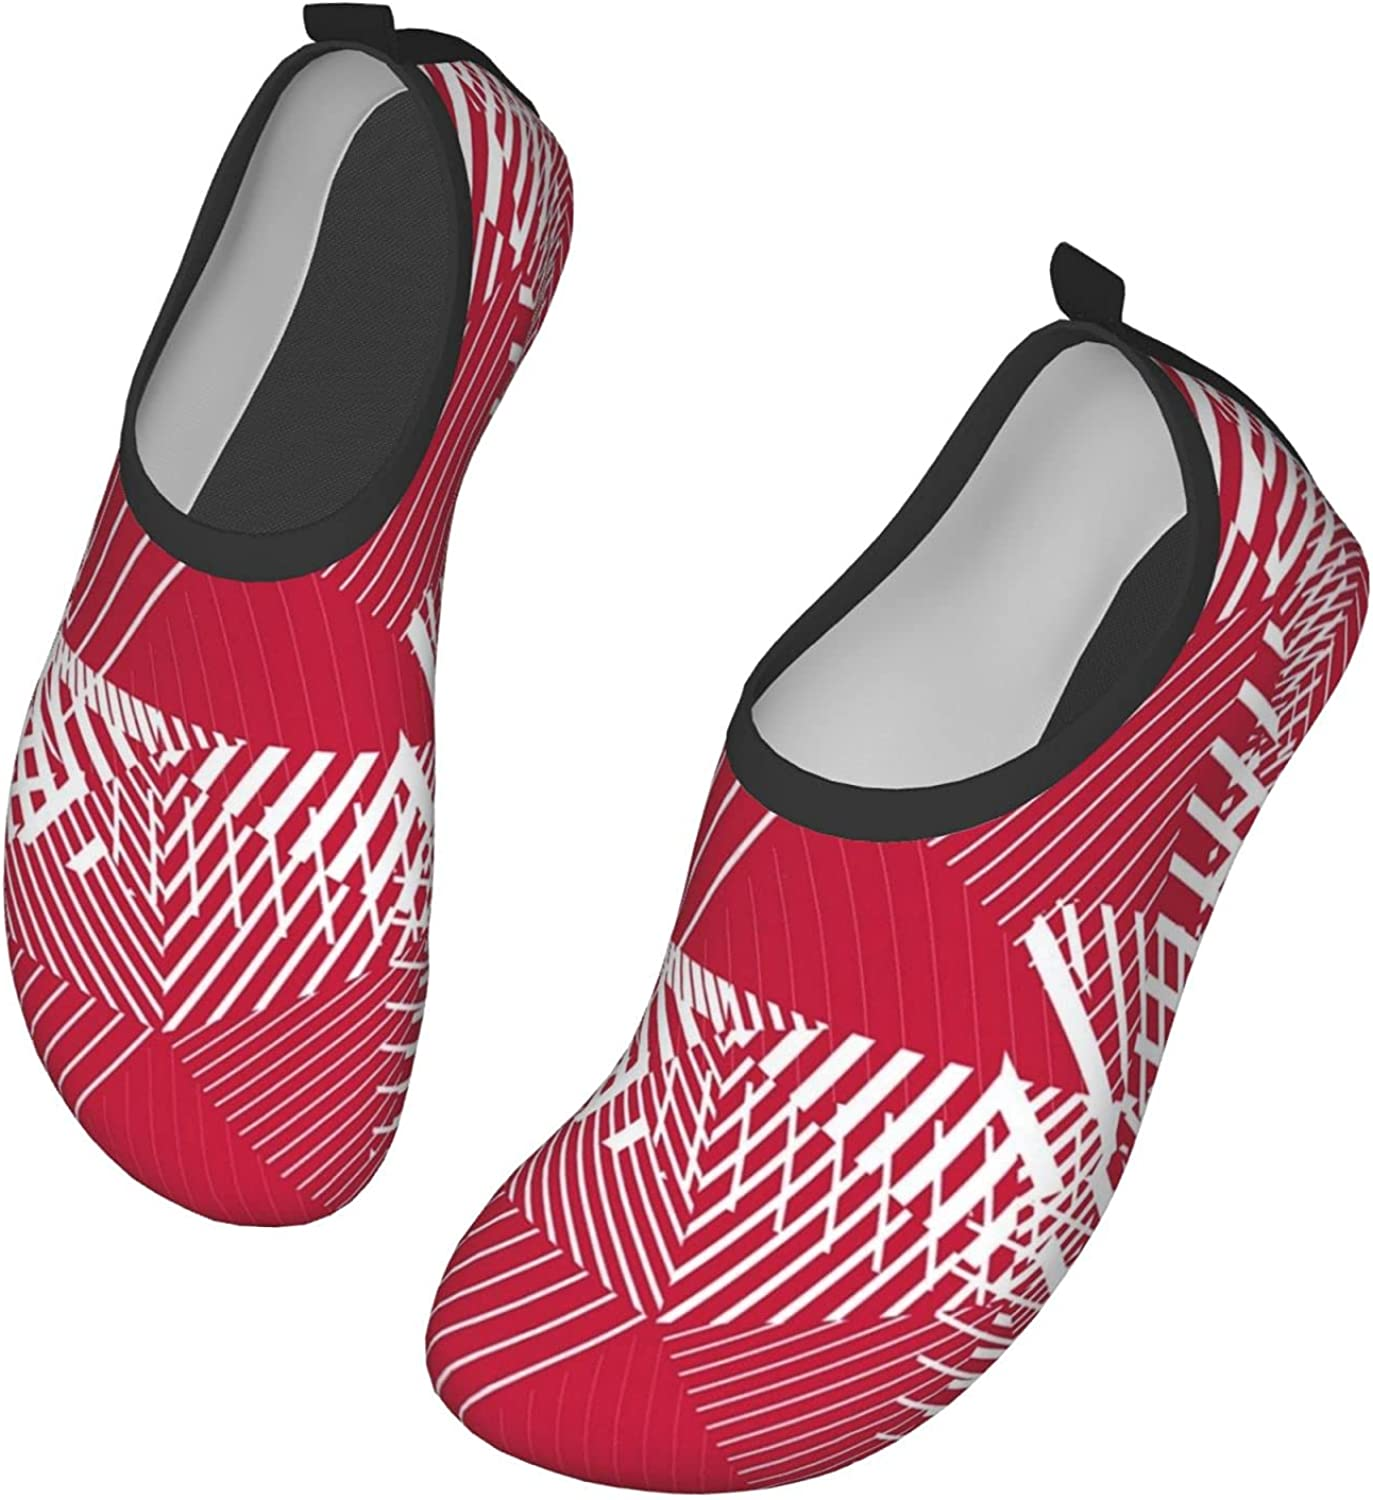 Abstract Red Lines Water Shoes for Womens Mens Barefoot Quick-Dry Aqua Socks for Beach Swim Surf Yoga Exercise New Translucent Color Soles